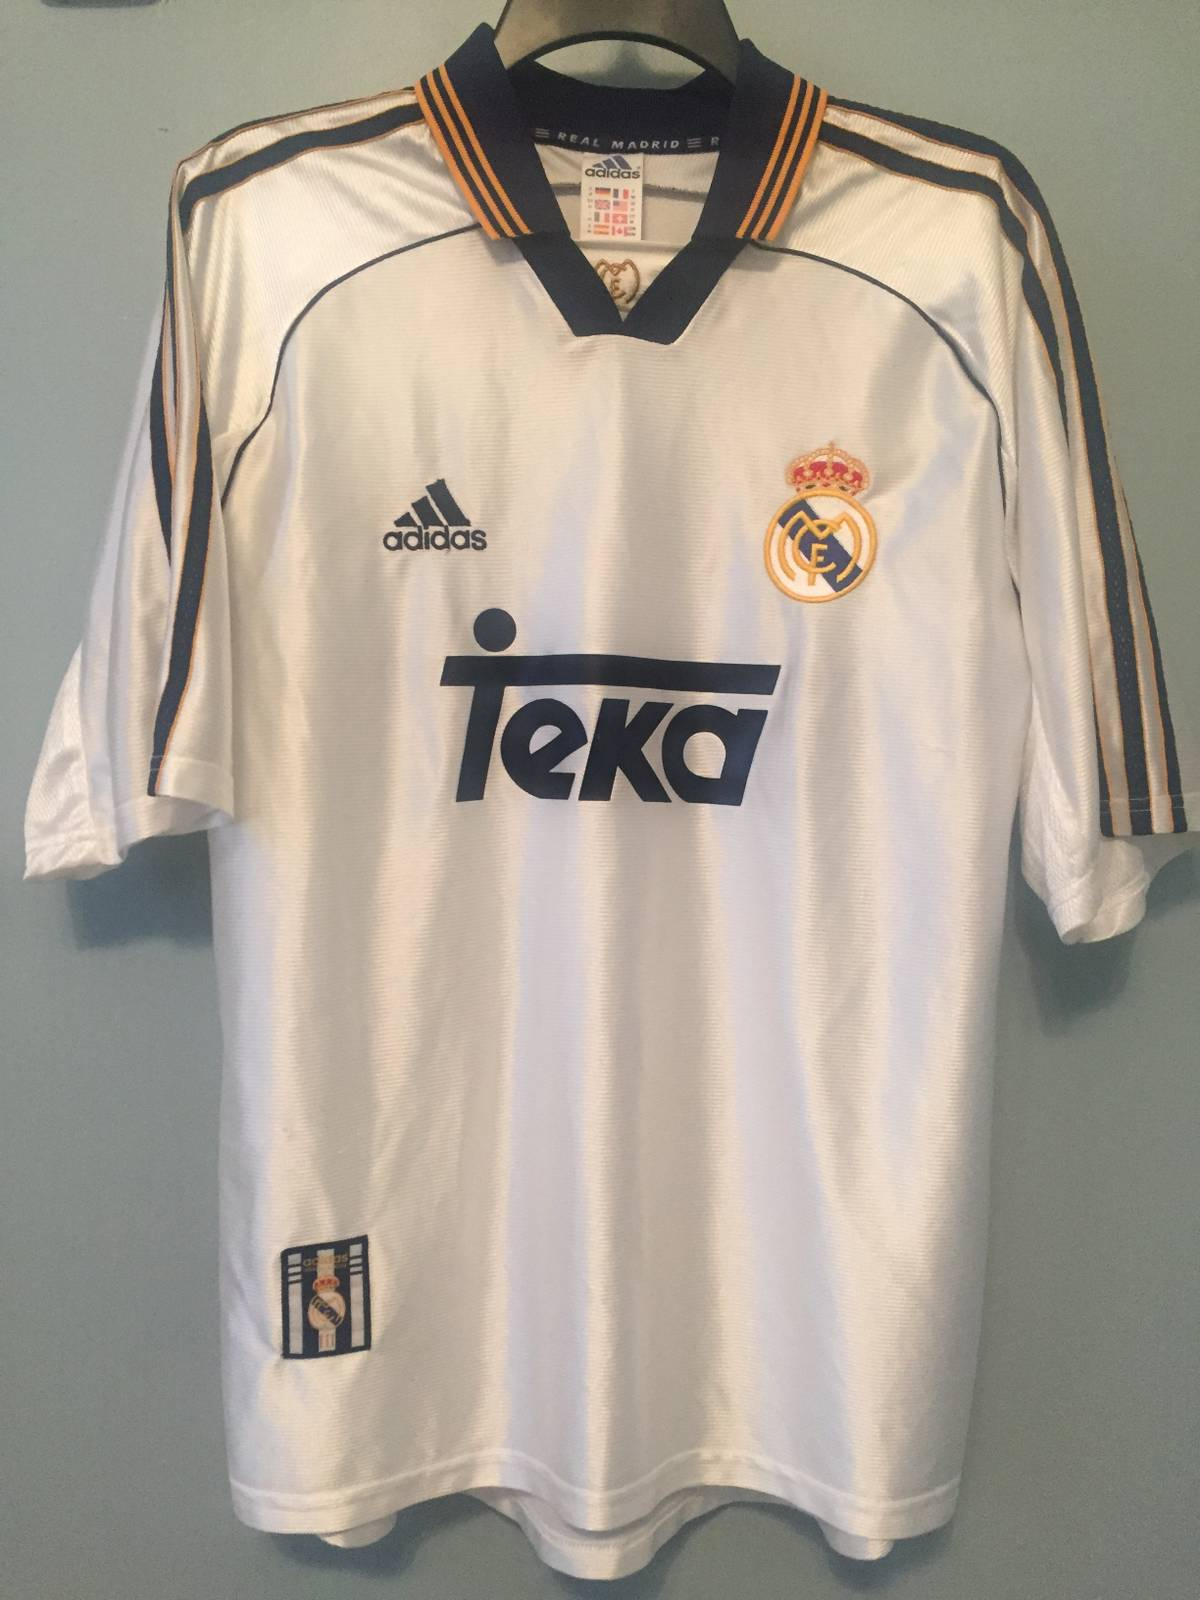 detailed look 98871 3ff5e Adidas Real Madrid Teka Jersey Size M $36